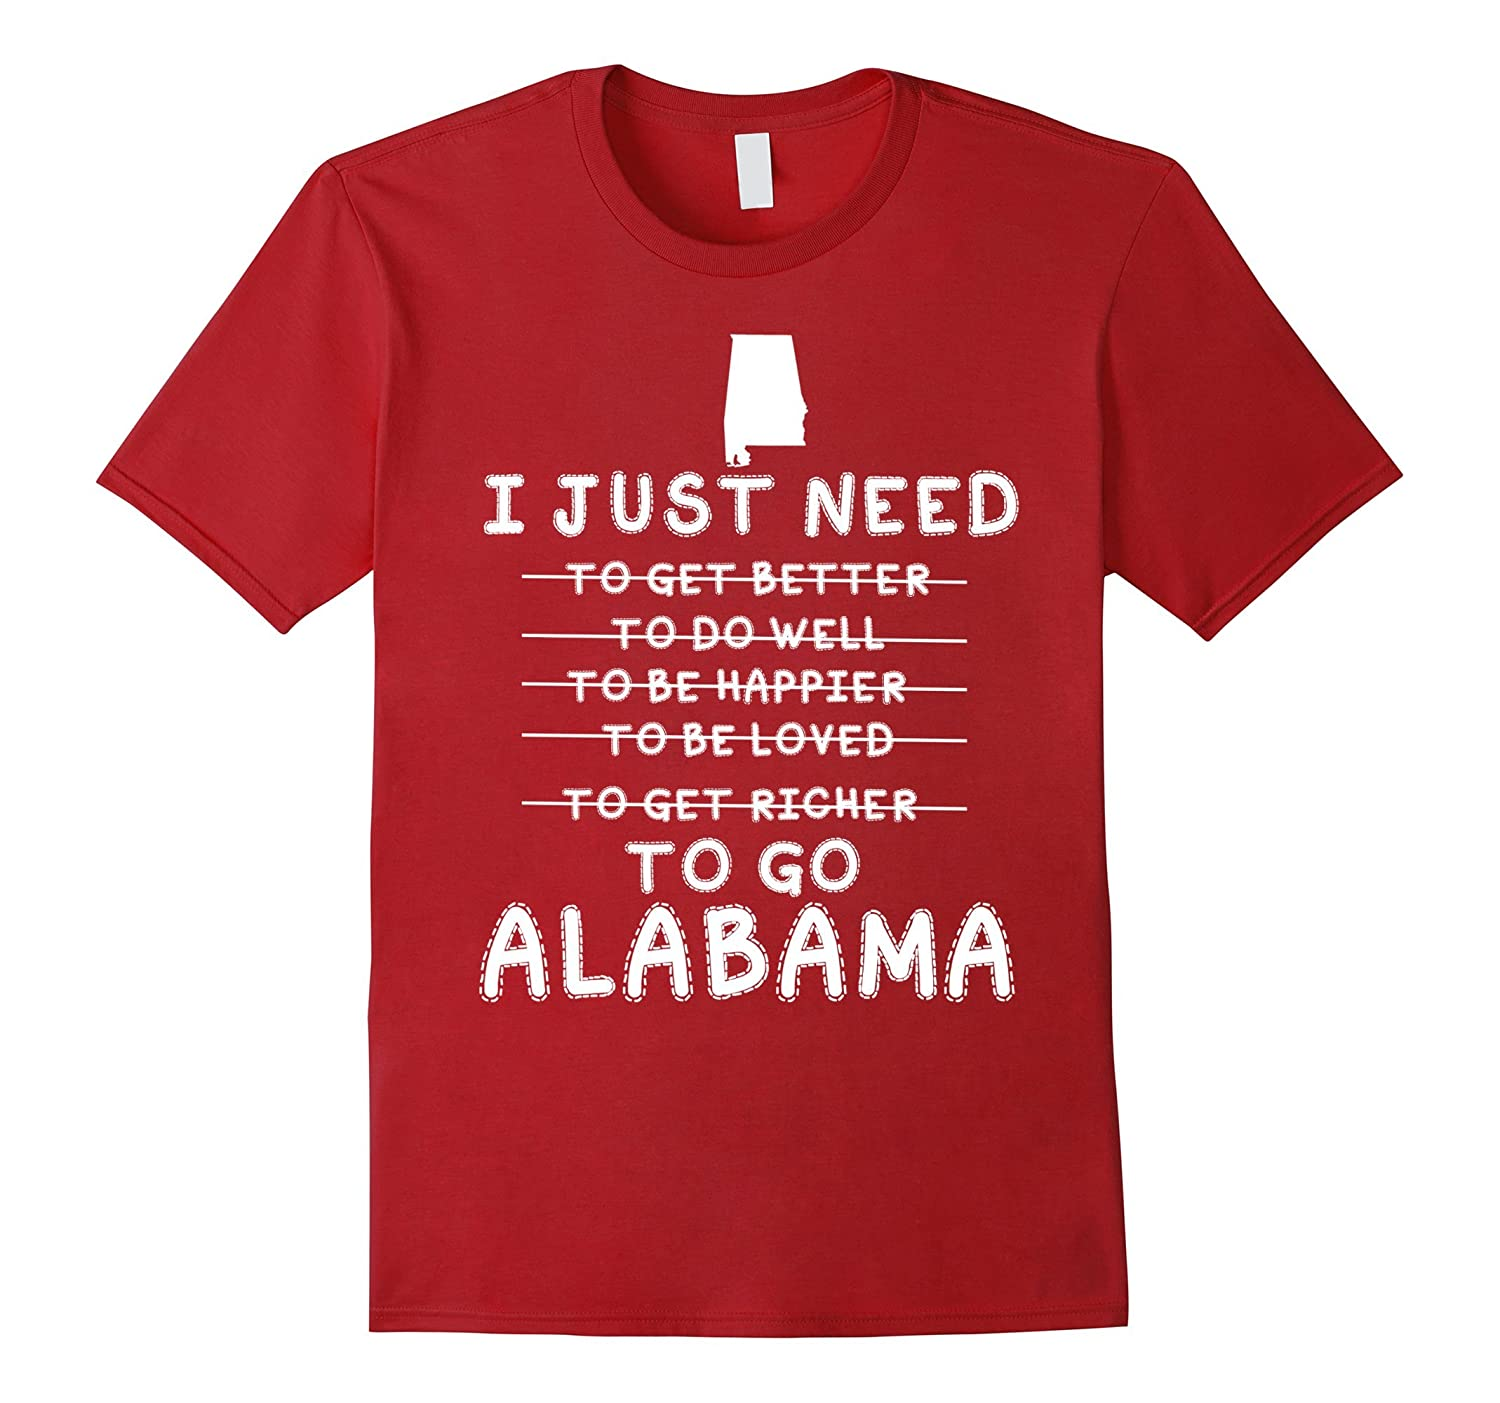 I Love My Home Alabama. Funny Tshirt Gift For Men/Women-Teehay